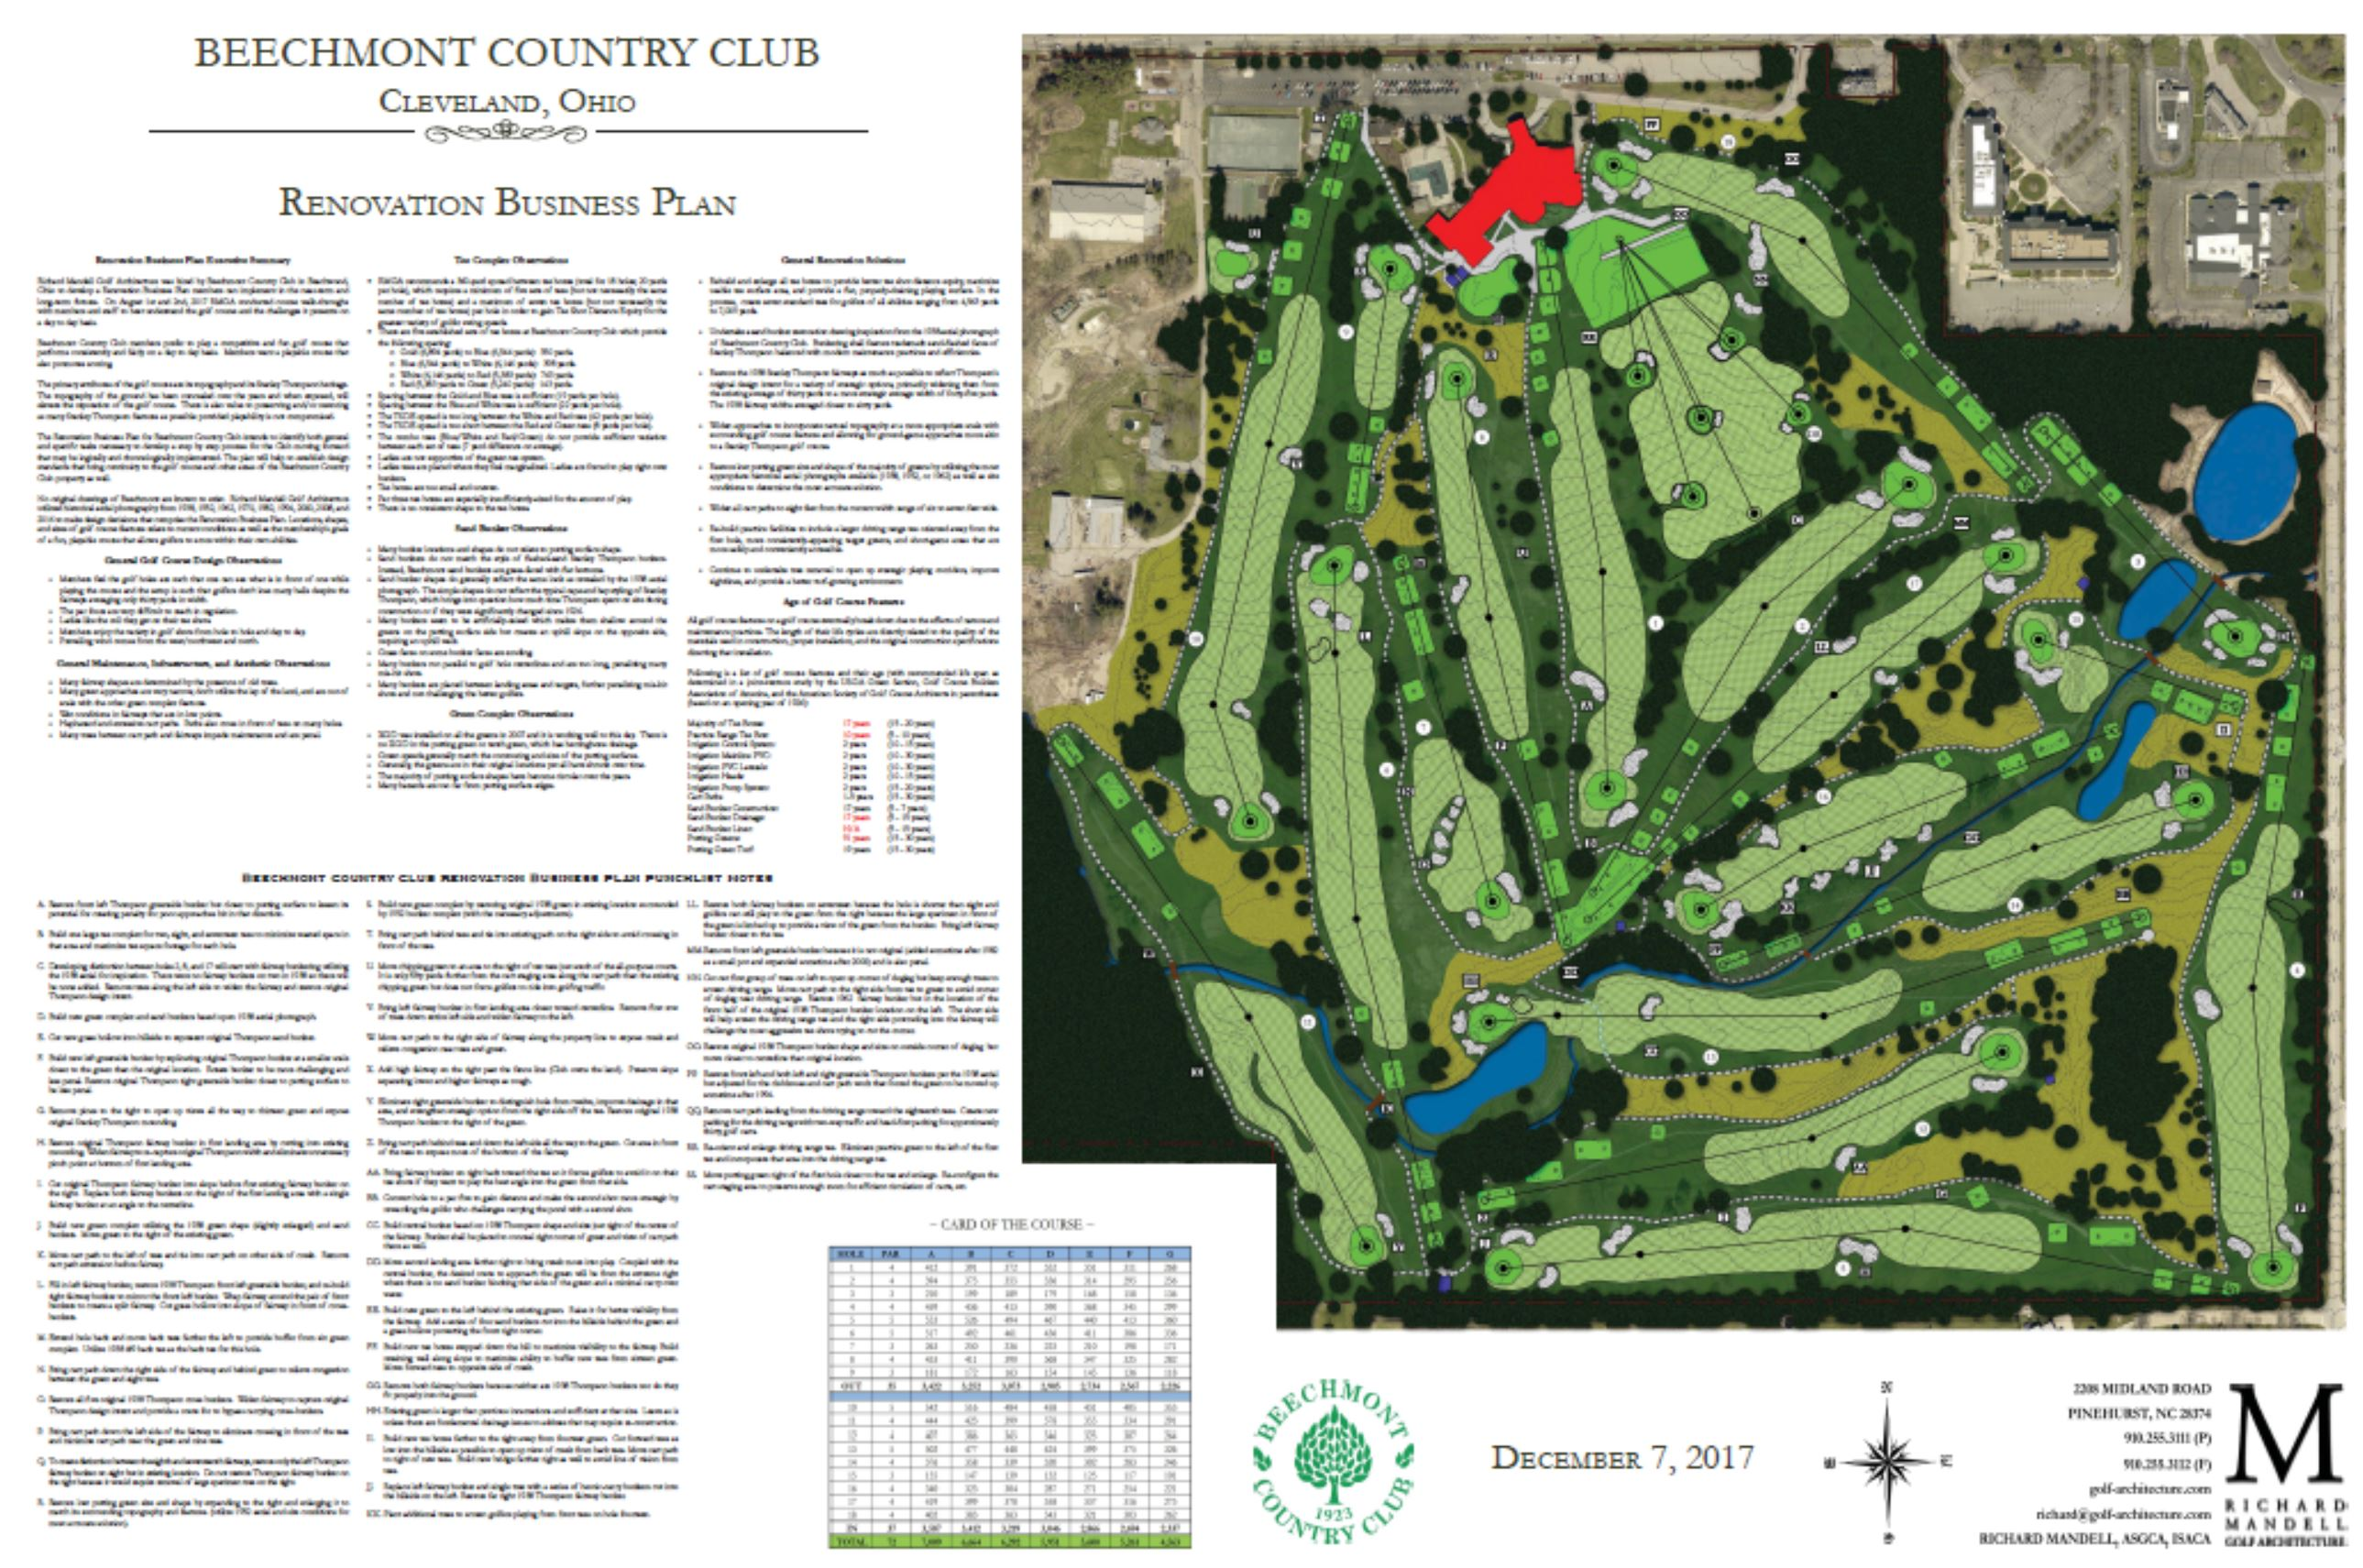 Beechmont Country Club Master Plan